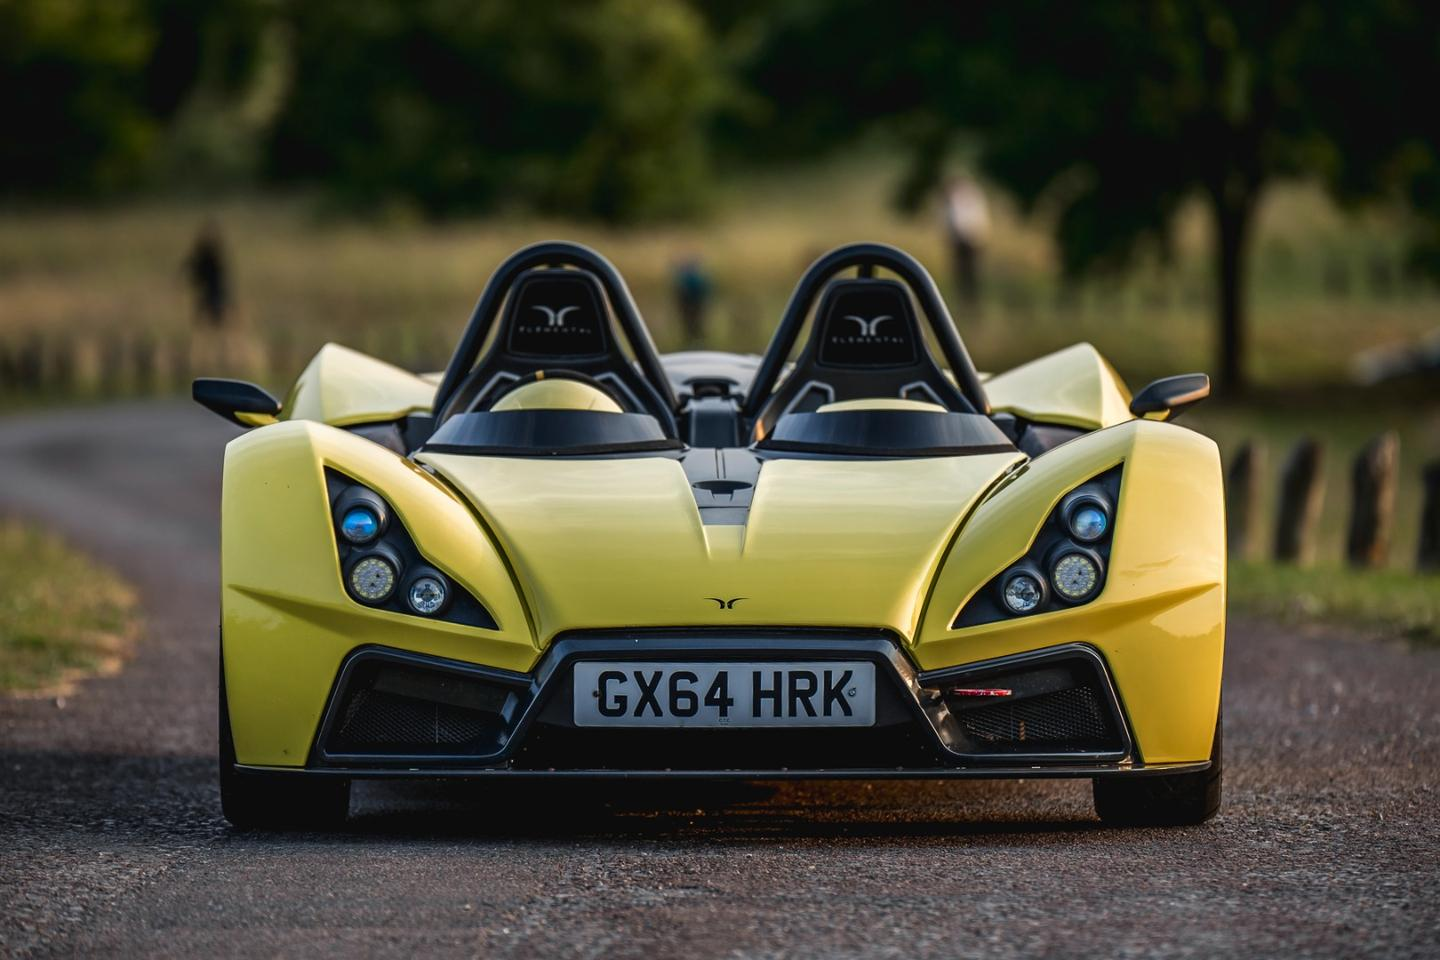 After about four years of development, the productionRp1 will make a rollingdebut at the 2016 Goodwood Festival of Speed